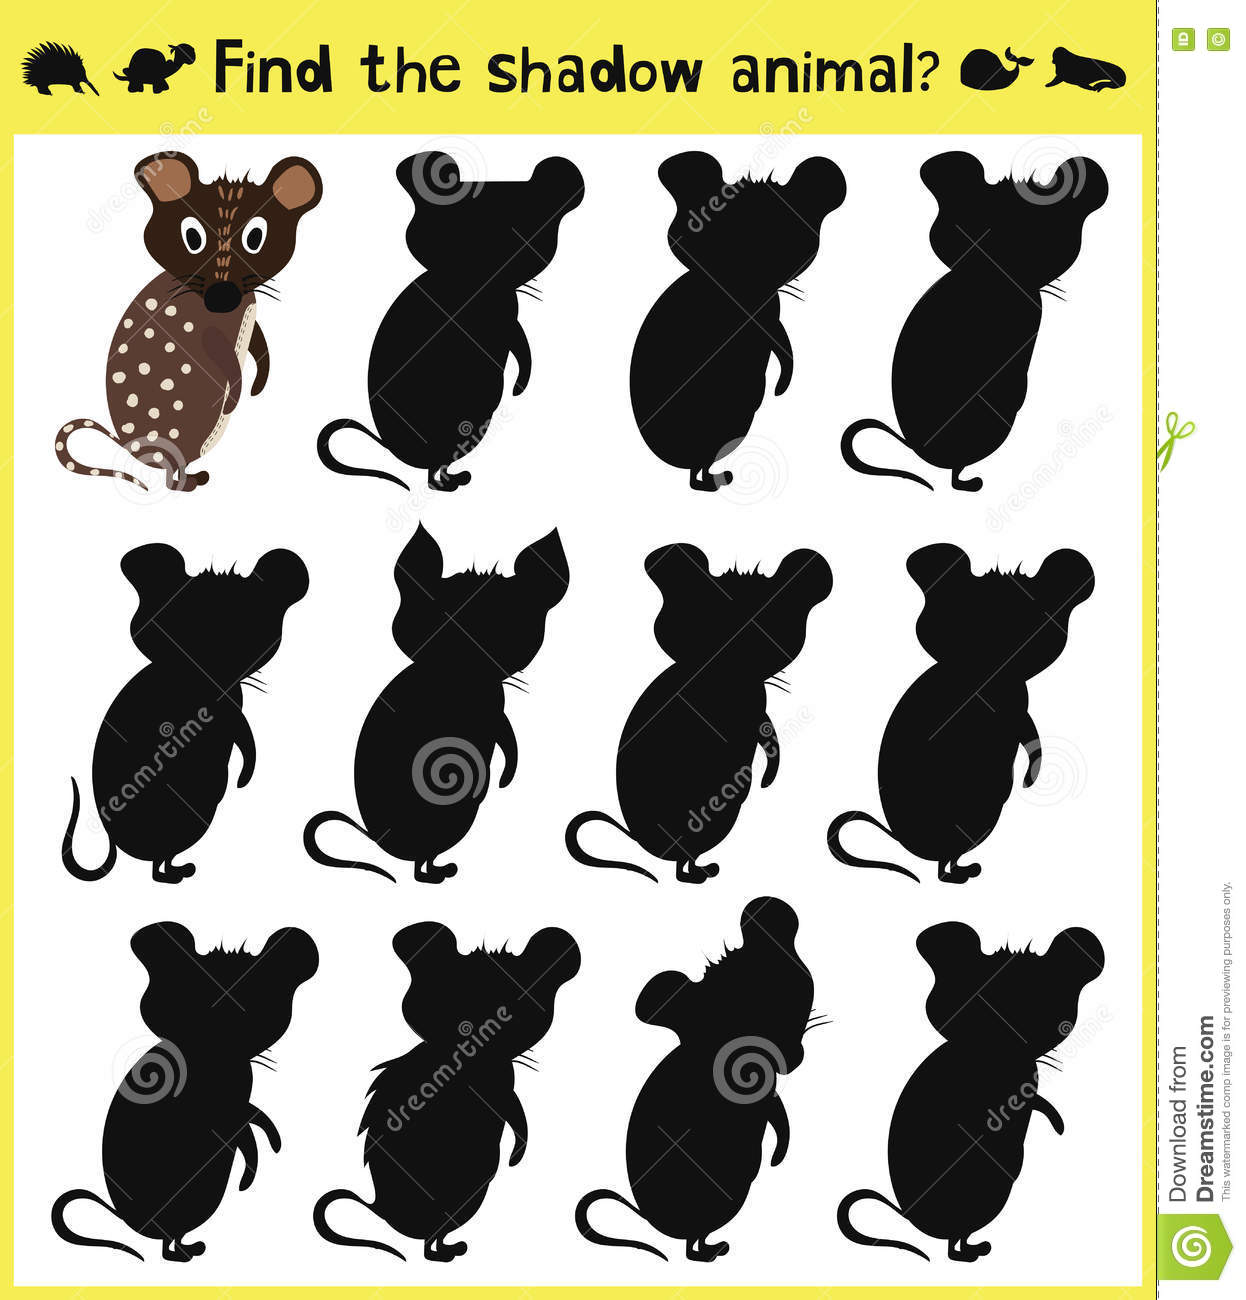 children u0027s developing game to find an appropriate shadow animal